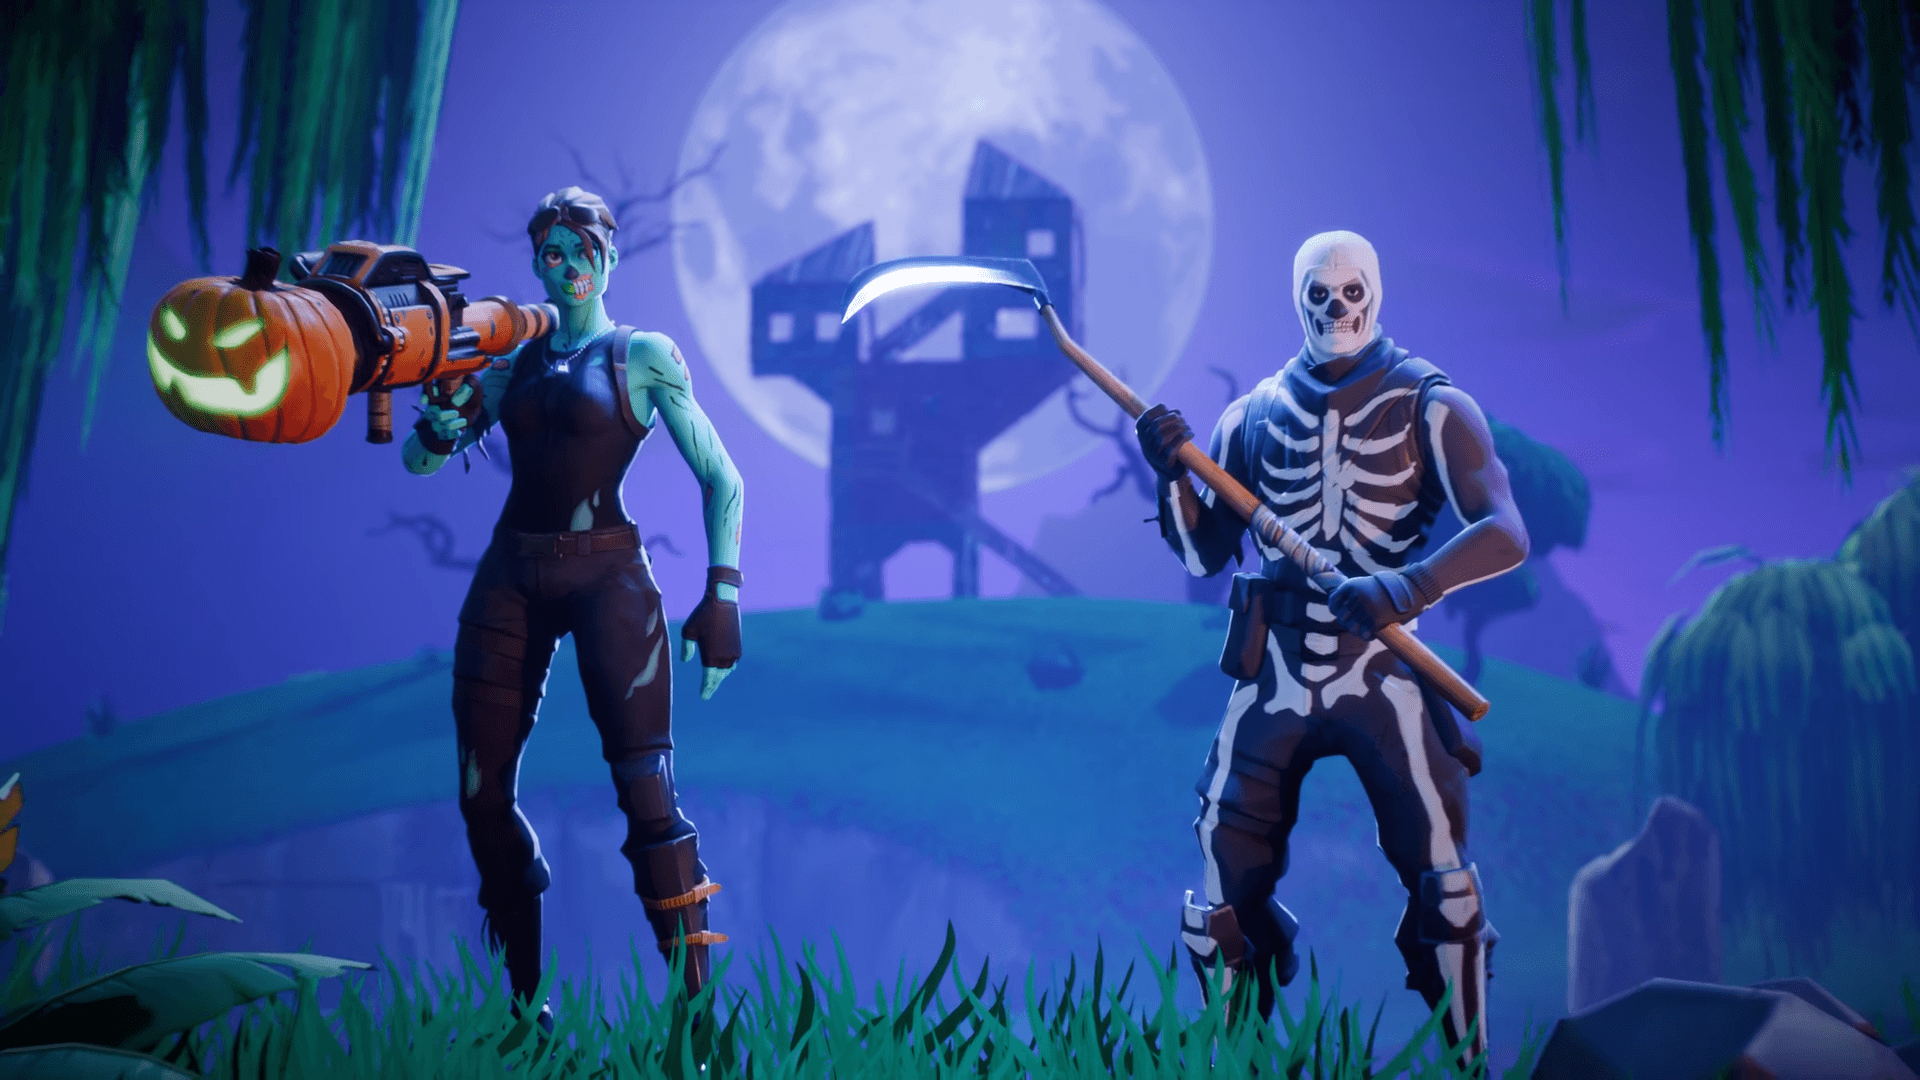 Wingtip Fortnite Wallpaper Changer Fortnite Gamers 1920x1080